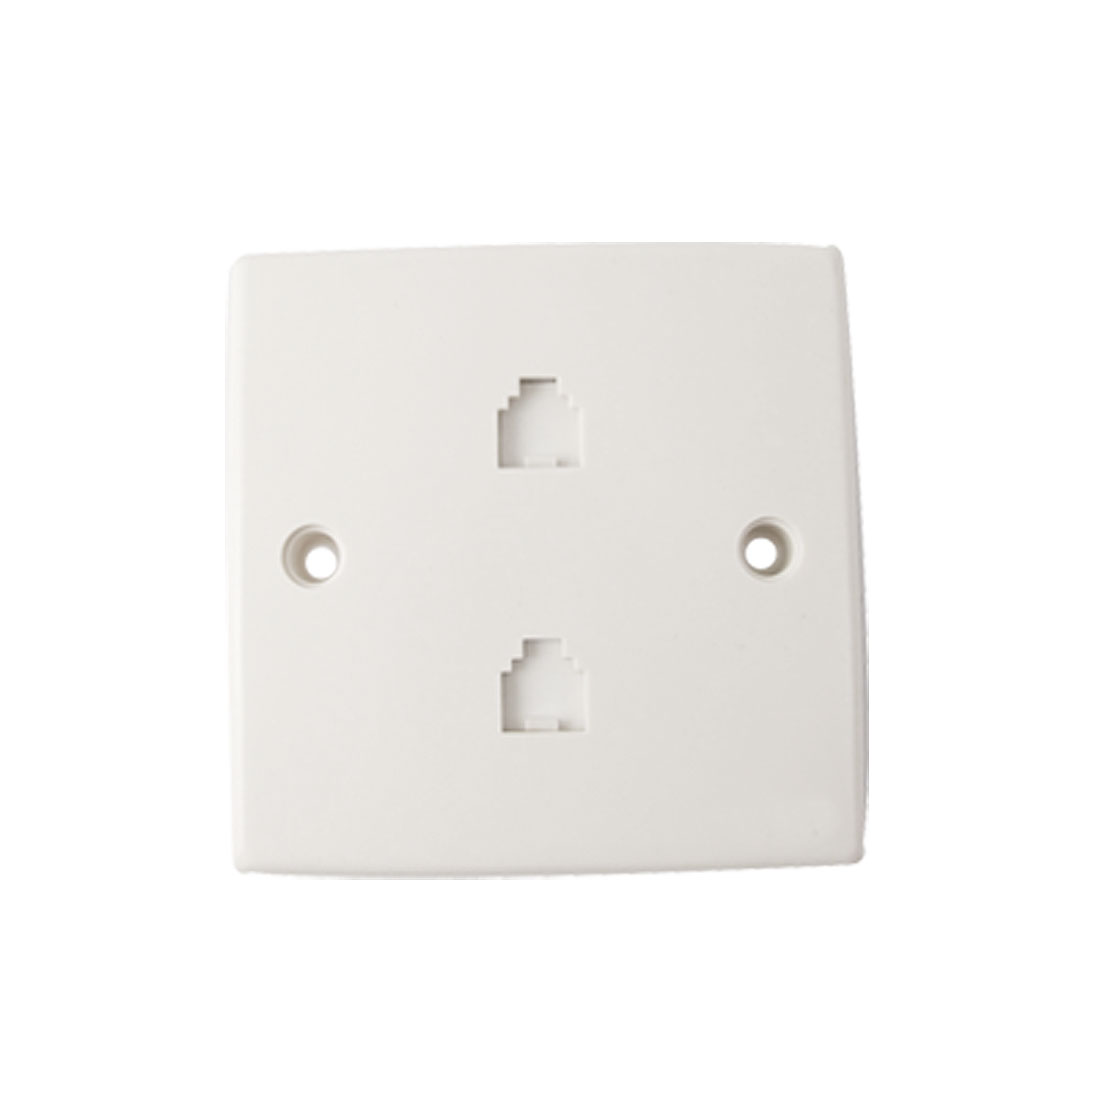 Double Port Telephone Wall Socket Panel for 4 Pin RJ11